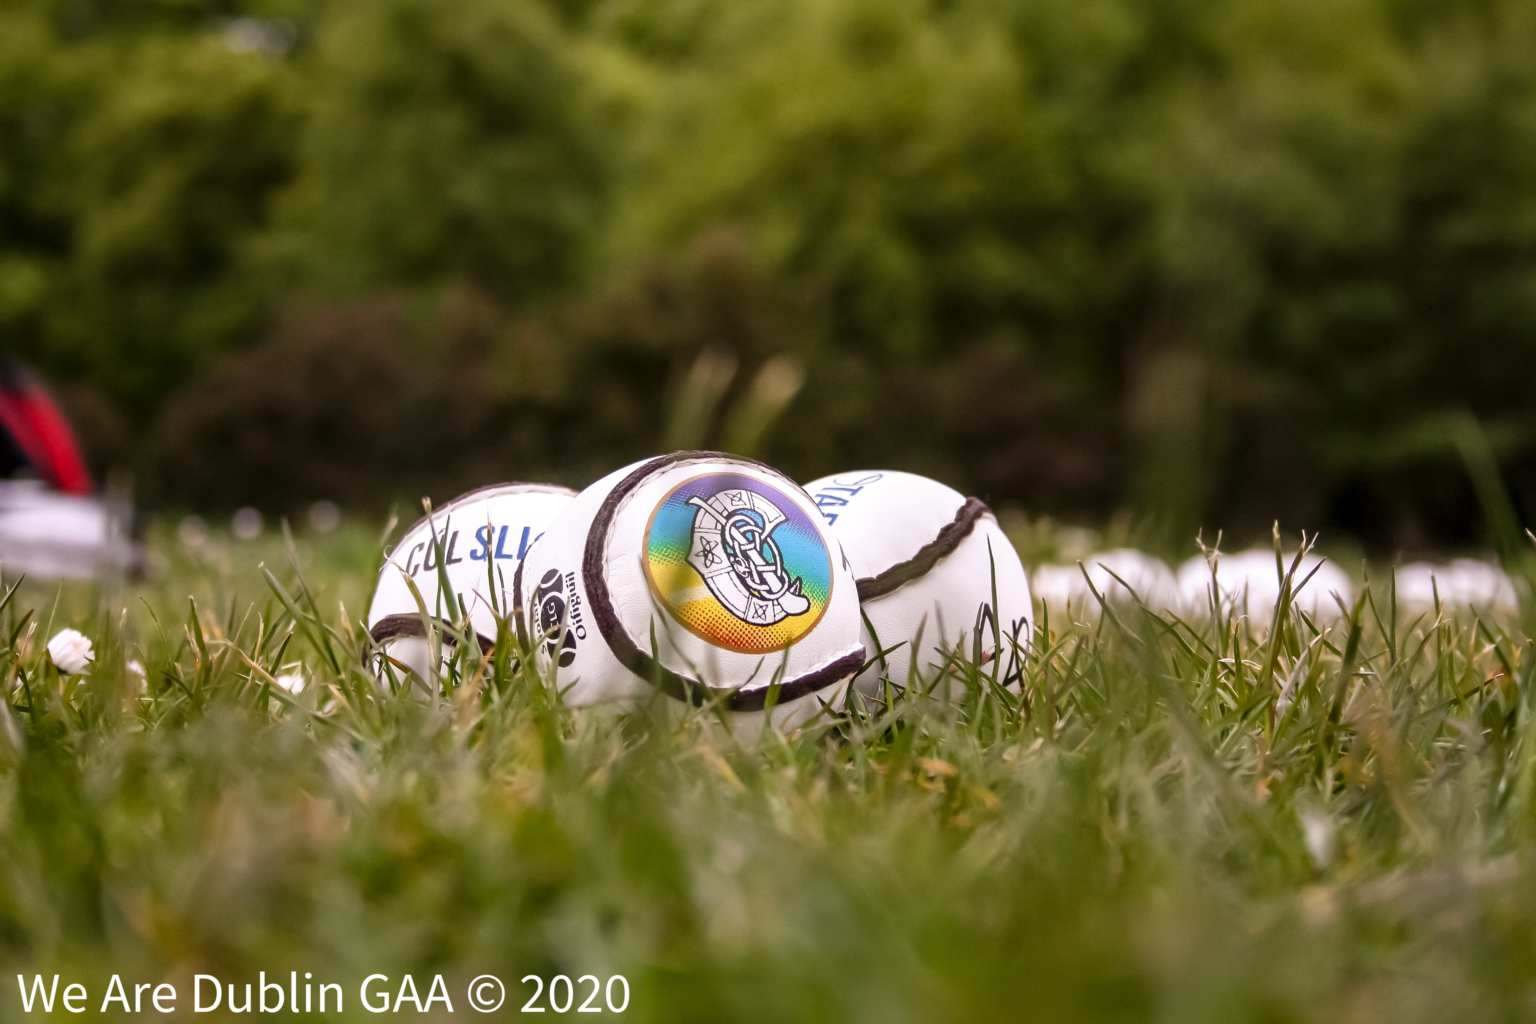 Three Camogie sliotars in a grass pitch, the Camogie Association has announced they will be streaming live five fixtures from Division 1 of the 2020 Littlewoods Ireland Camogie Leagues